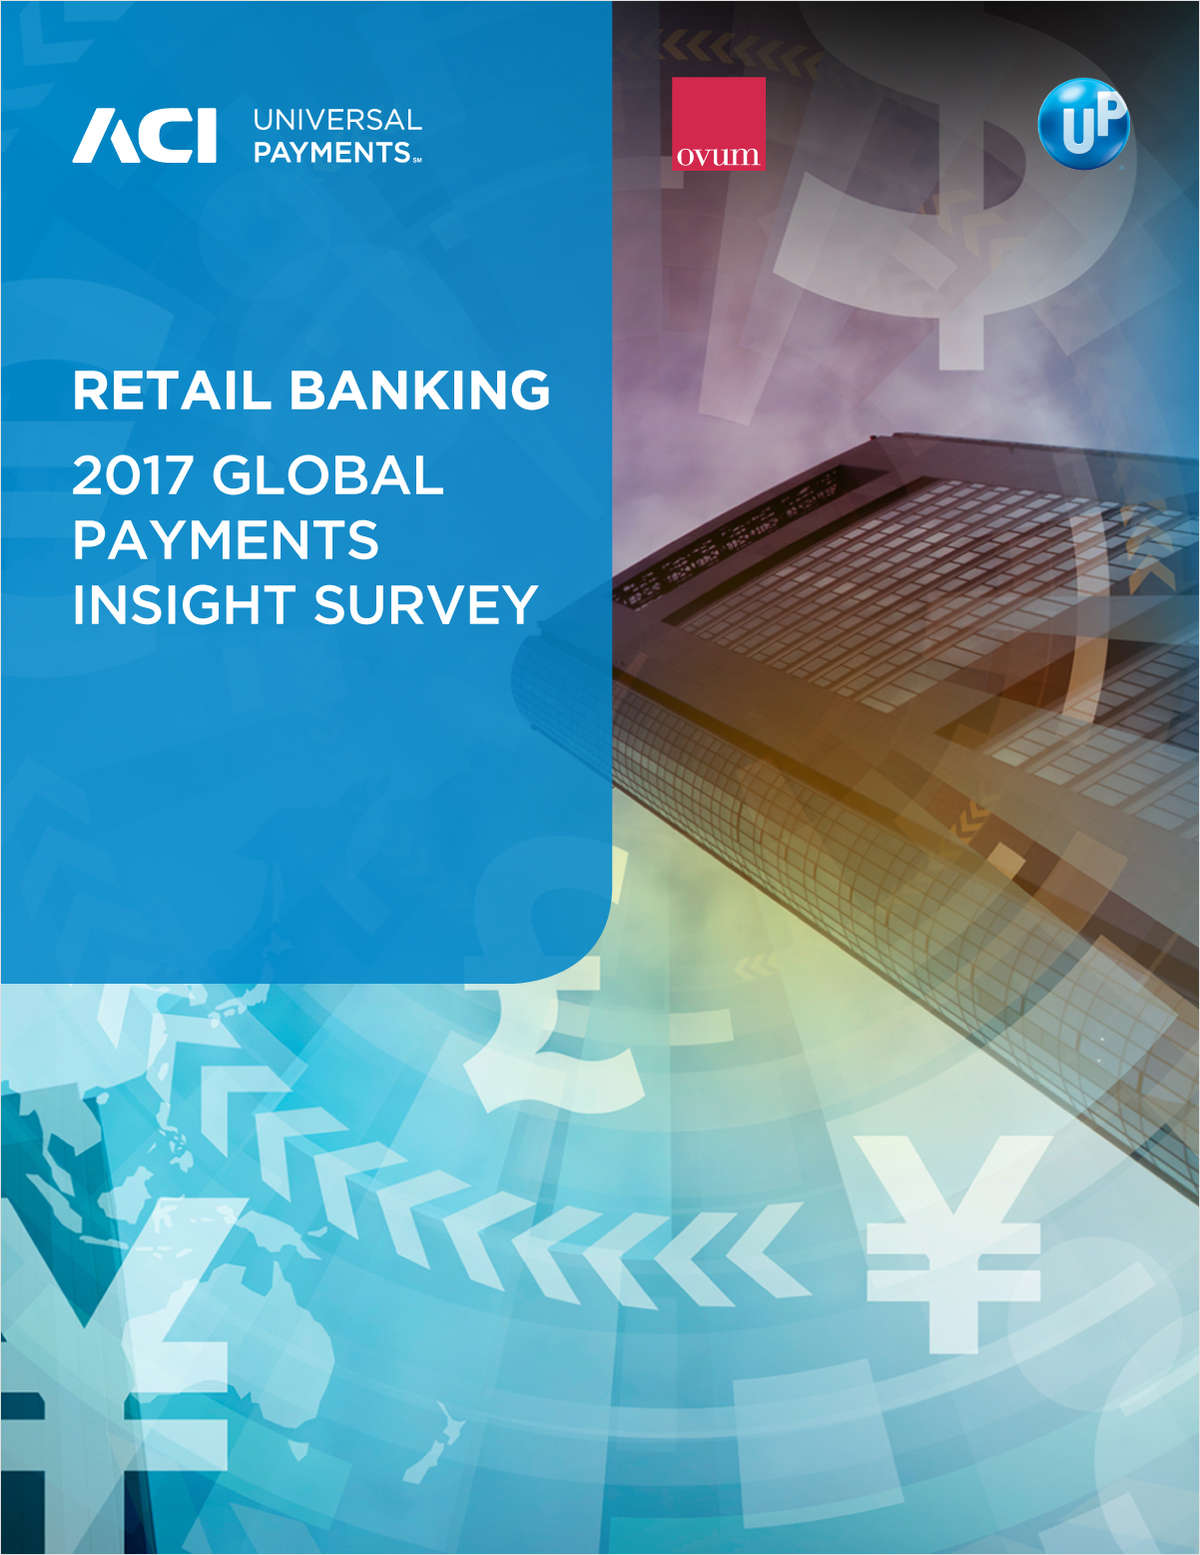 Retail Banking - Payments Infrastructure is Key to the Future